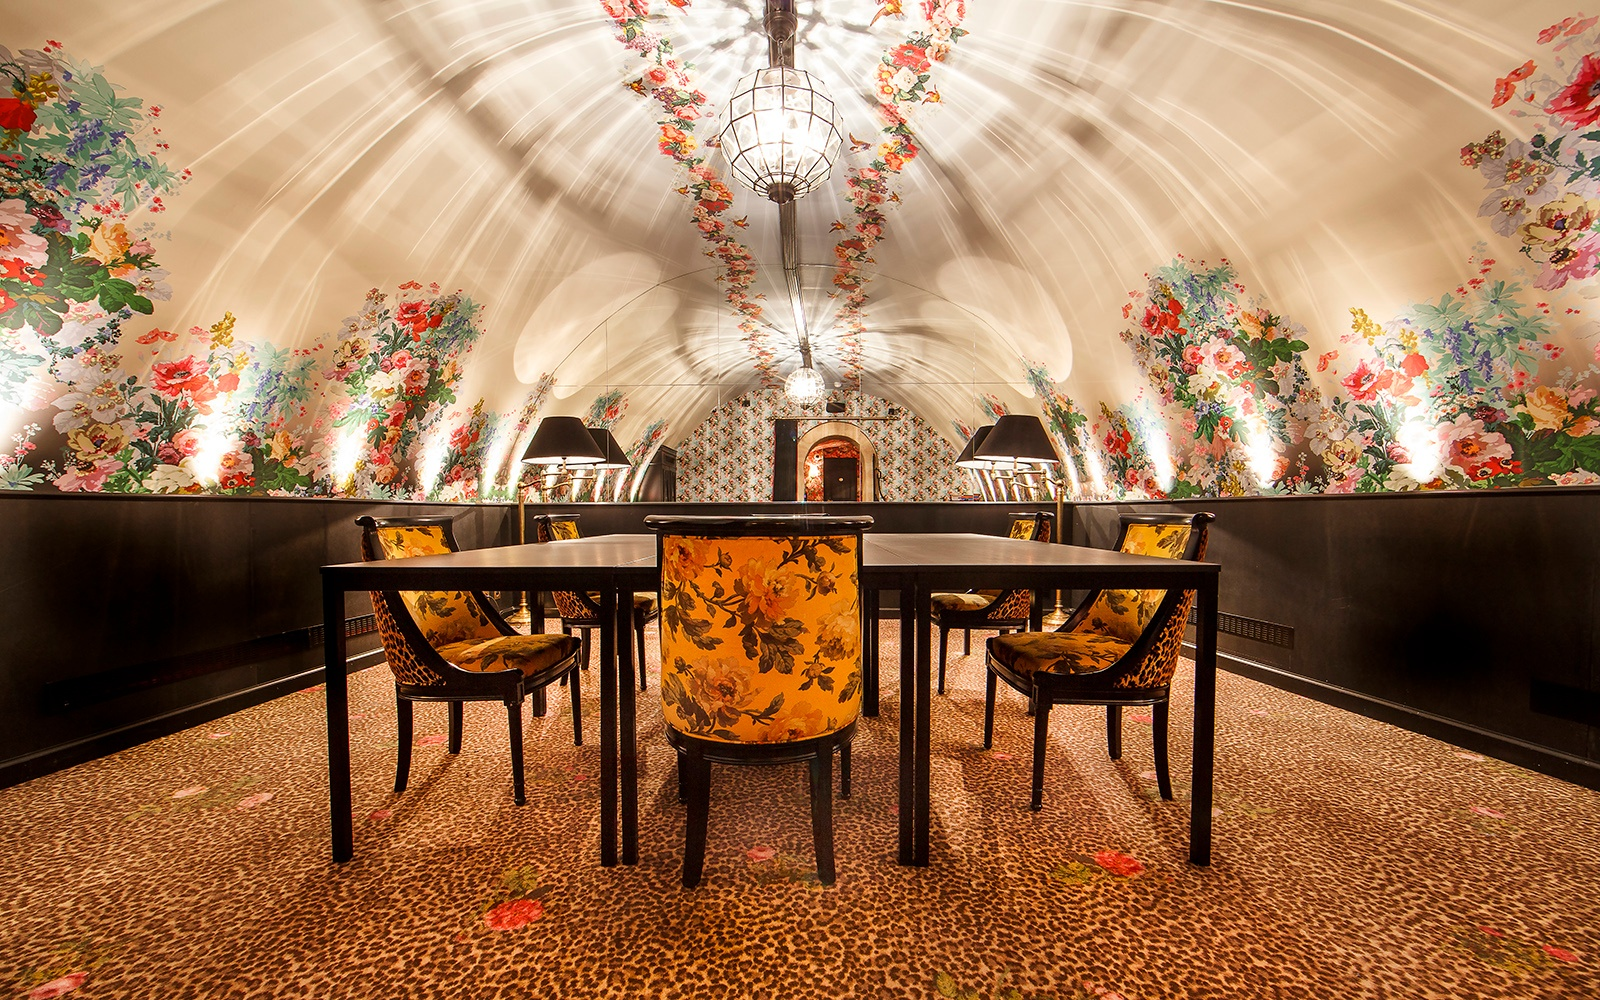 Animal and floral print wall-to-wall carpet by ege at Hotel de JoBo